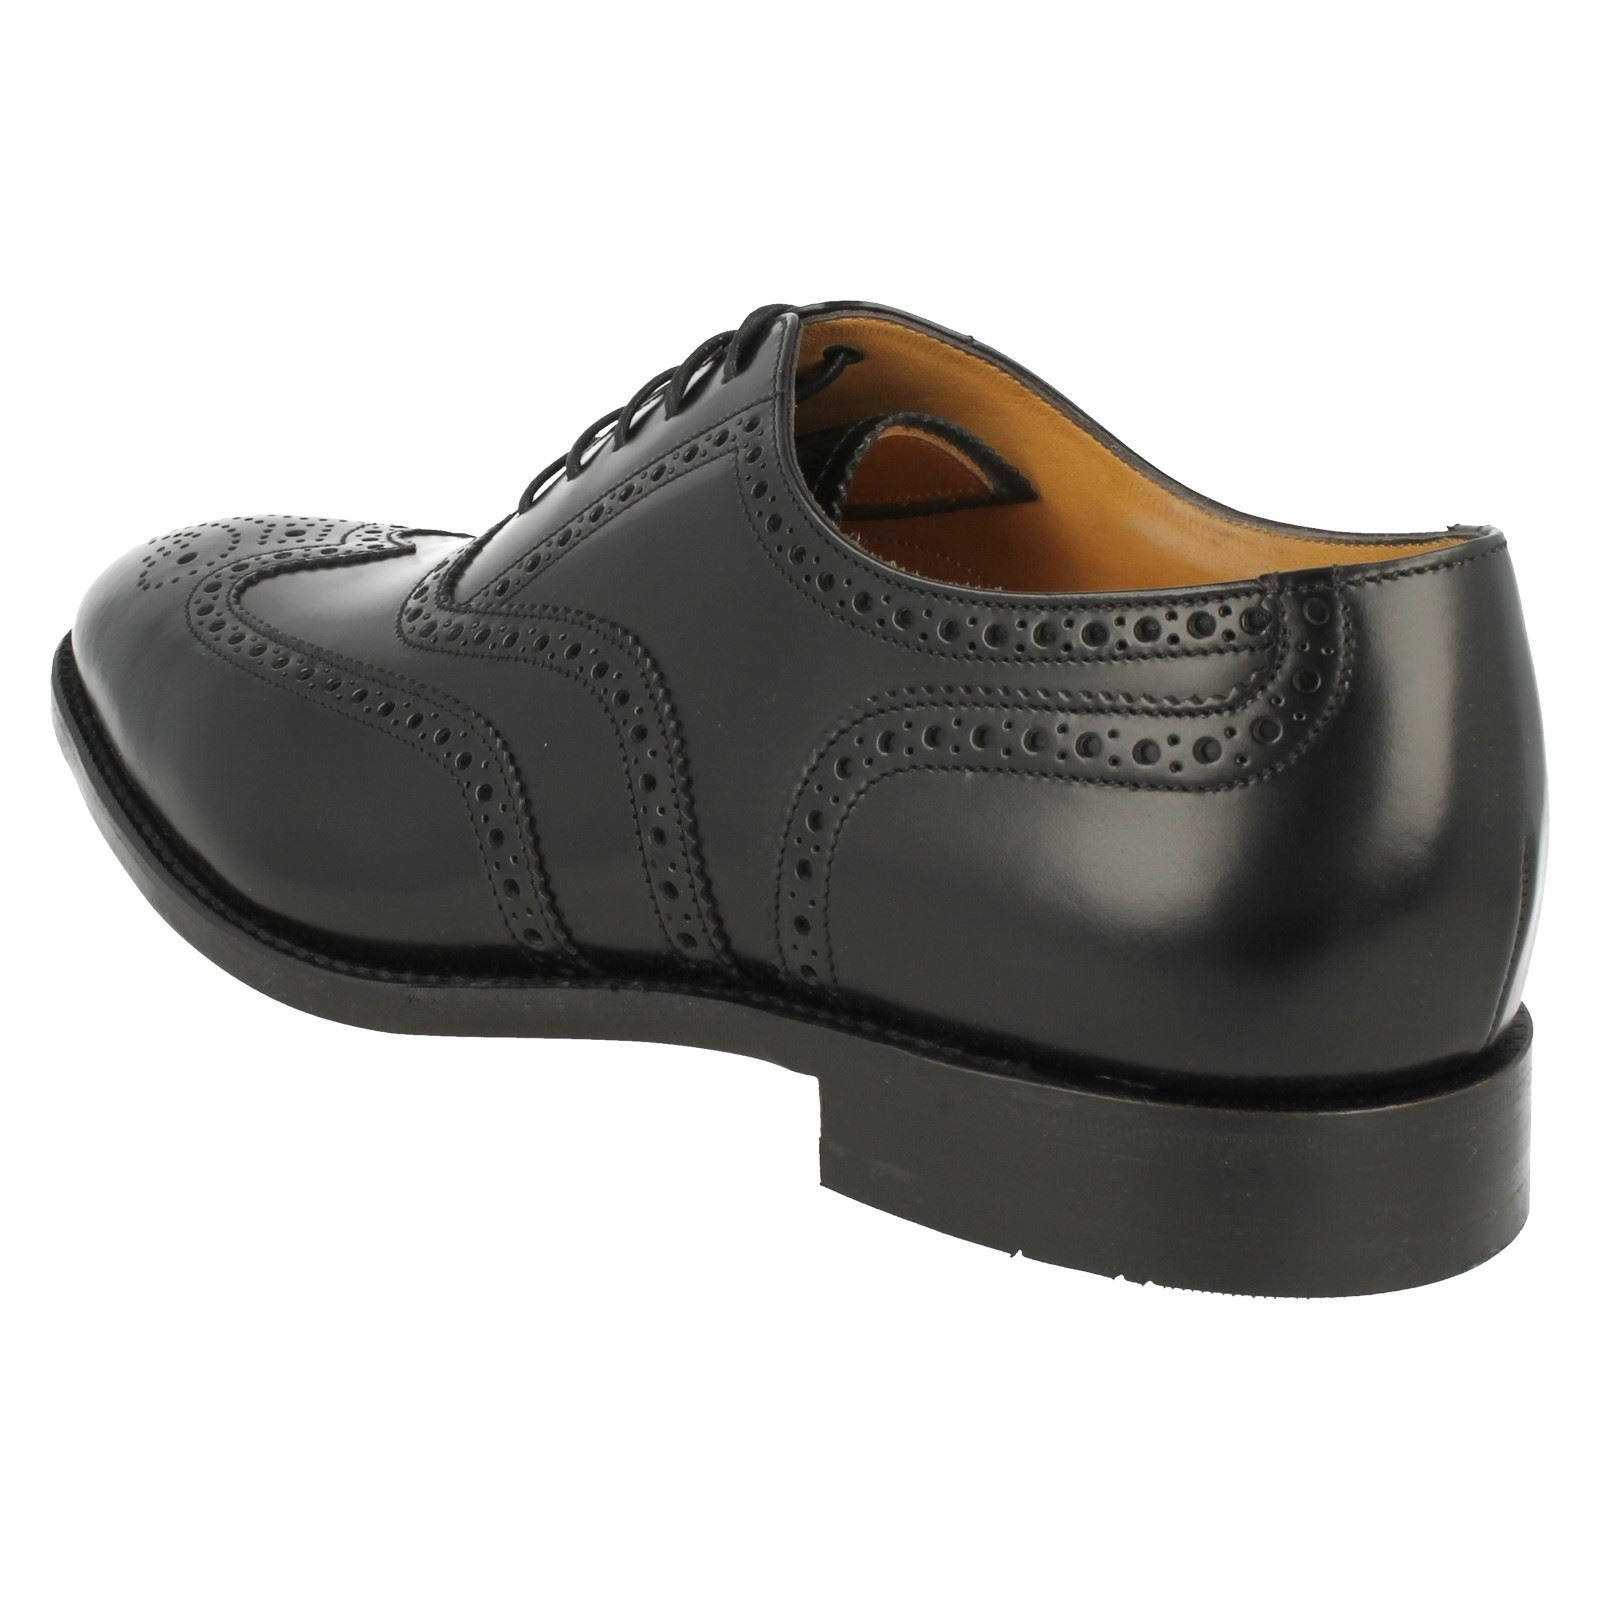 Mens Loake 758B2 Classic Leather Lace Up Brogue Shoes